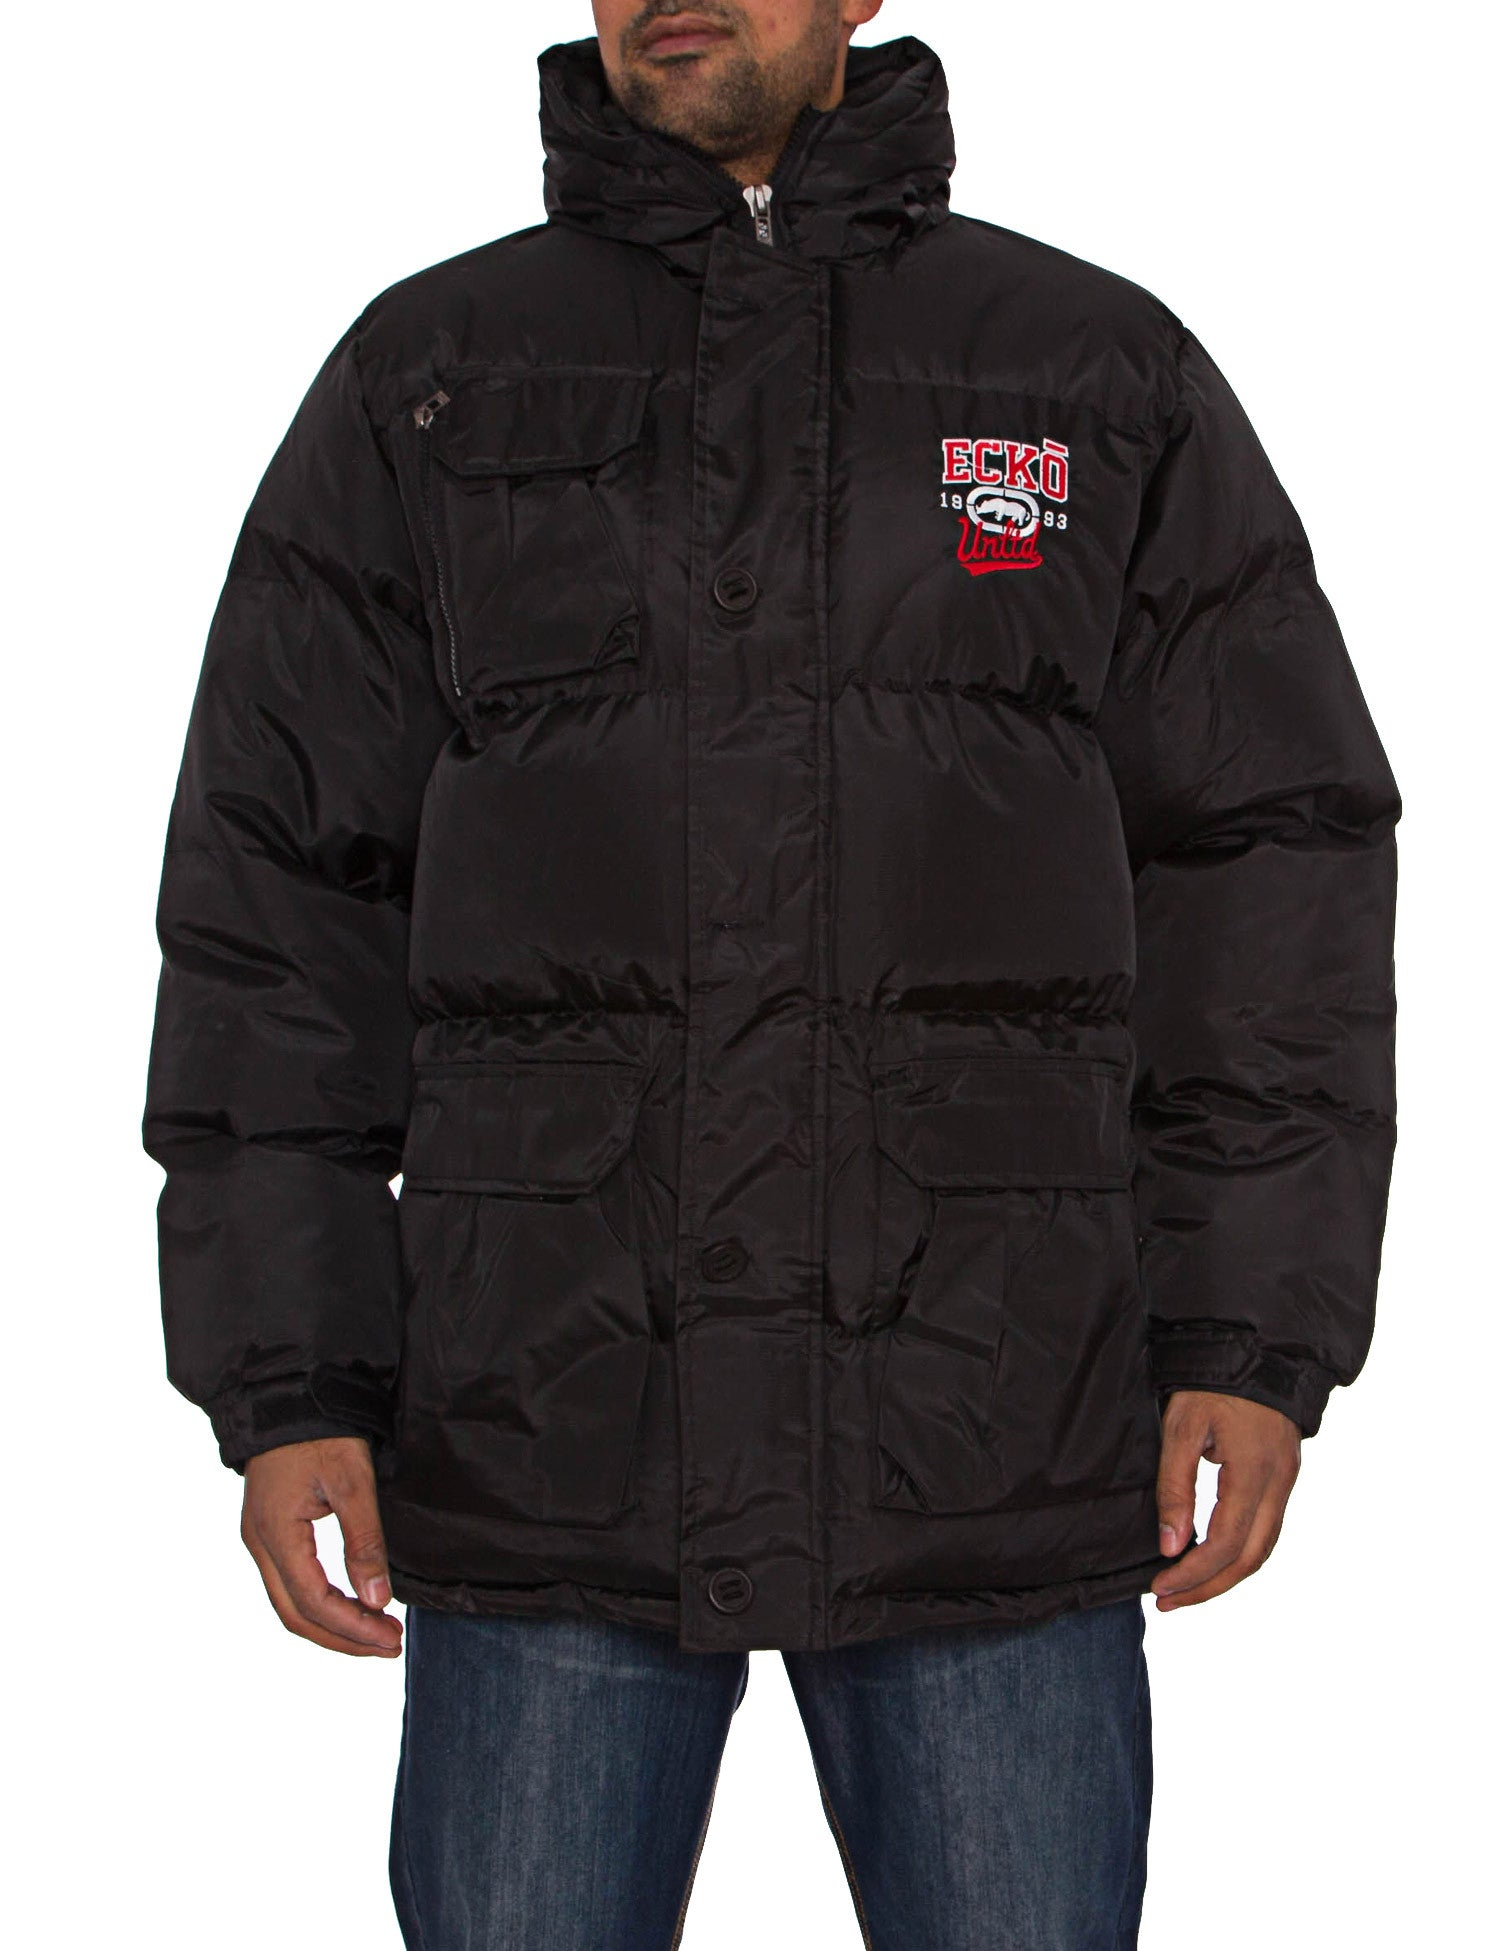 Image of Birlinetta Jacket Black